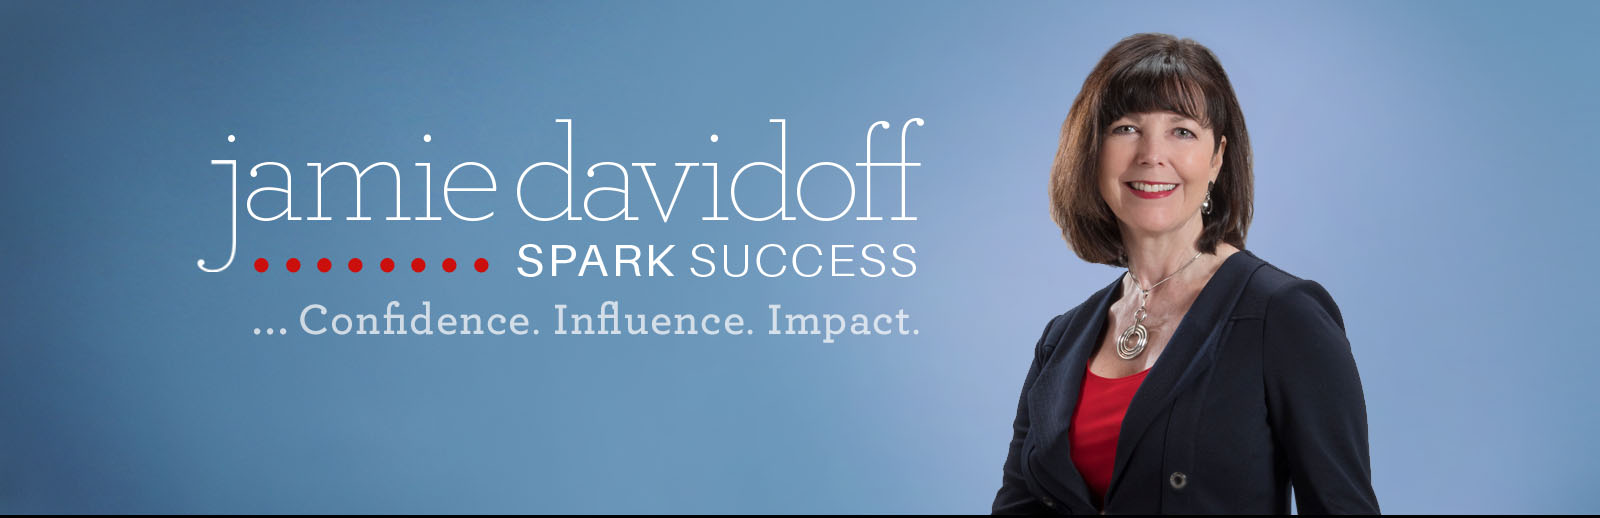 Jamie Davidoff, Leadership Coach harnessing the passion of people to create organizational success